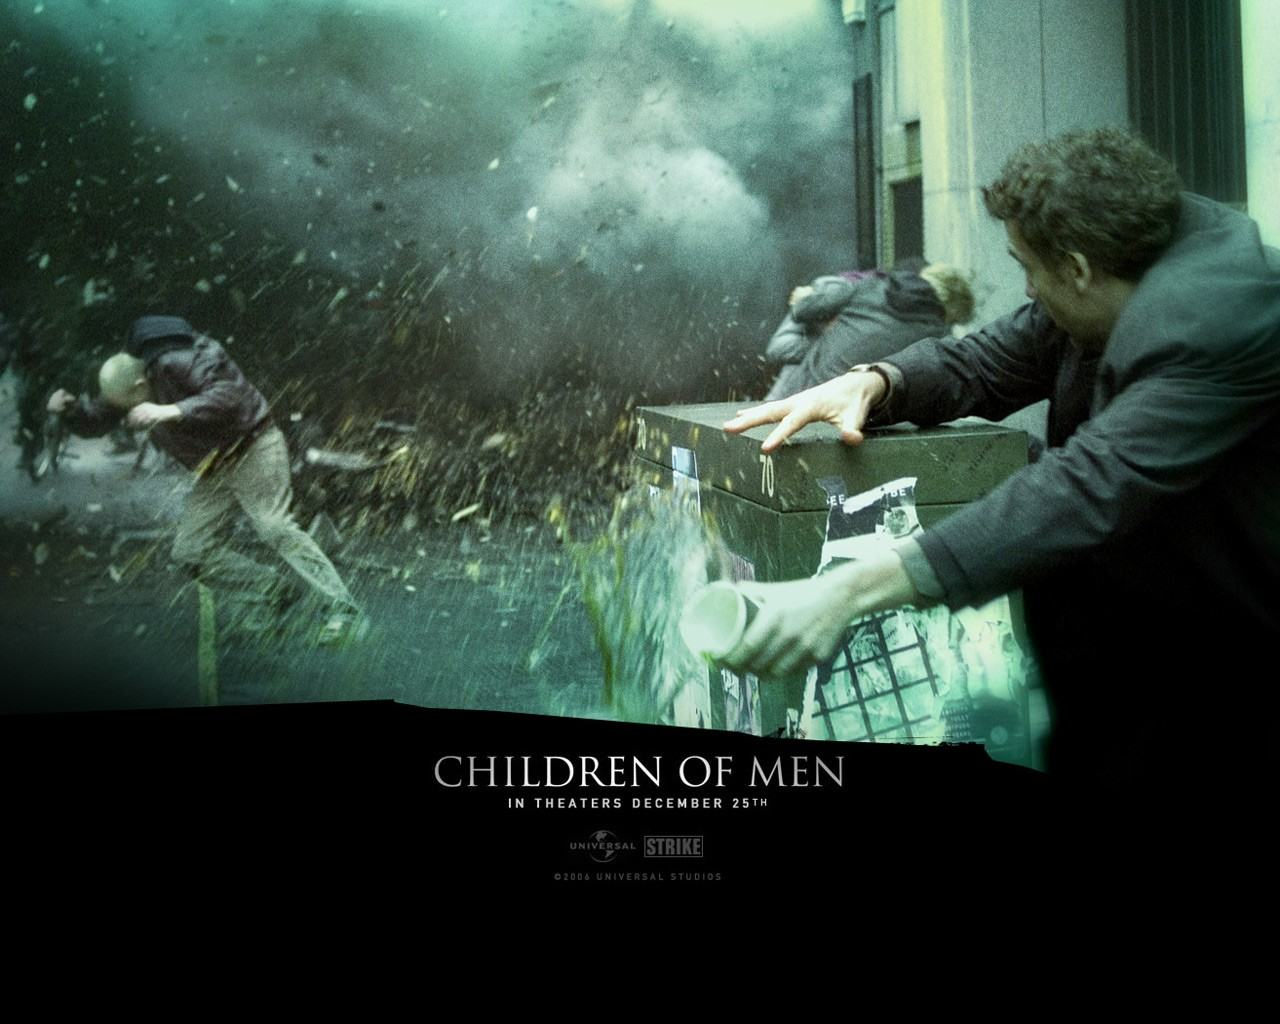 Обои Children of Men 1280x1024